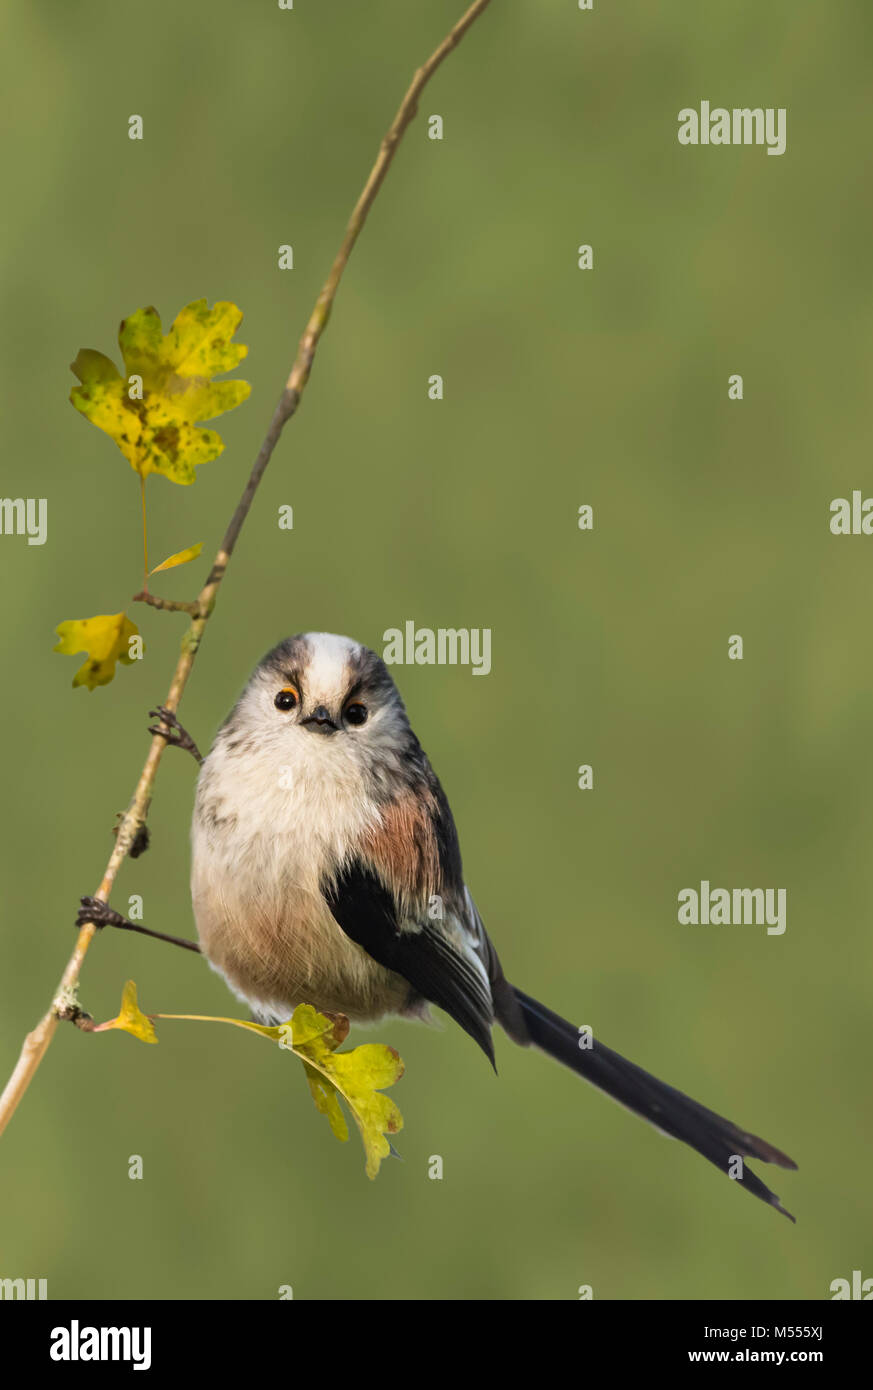 adult-long-tailed-tit-aegithalos-caudatus-in-a-tree-in-autumn-in-the-M555XJ.jpg